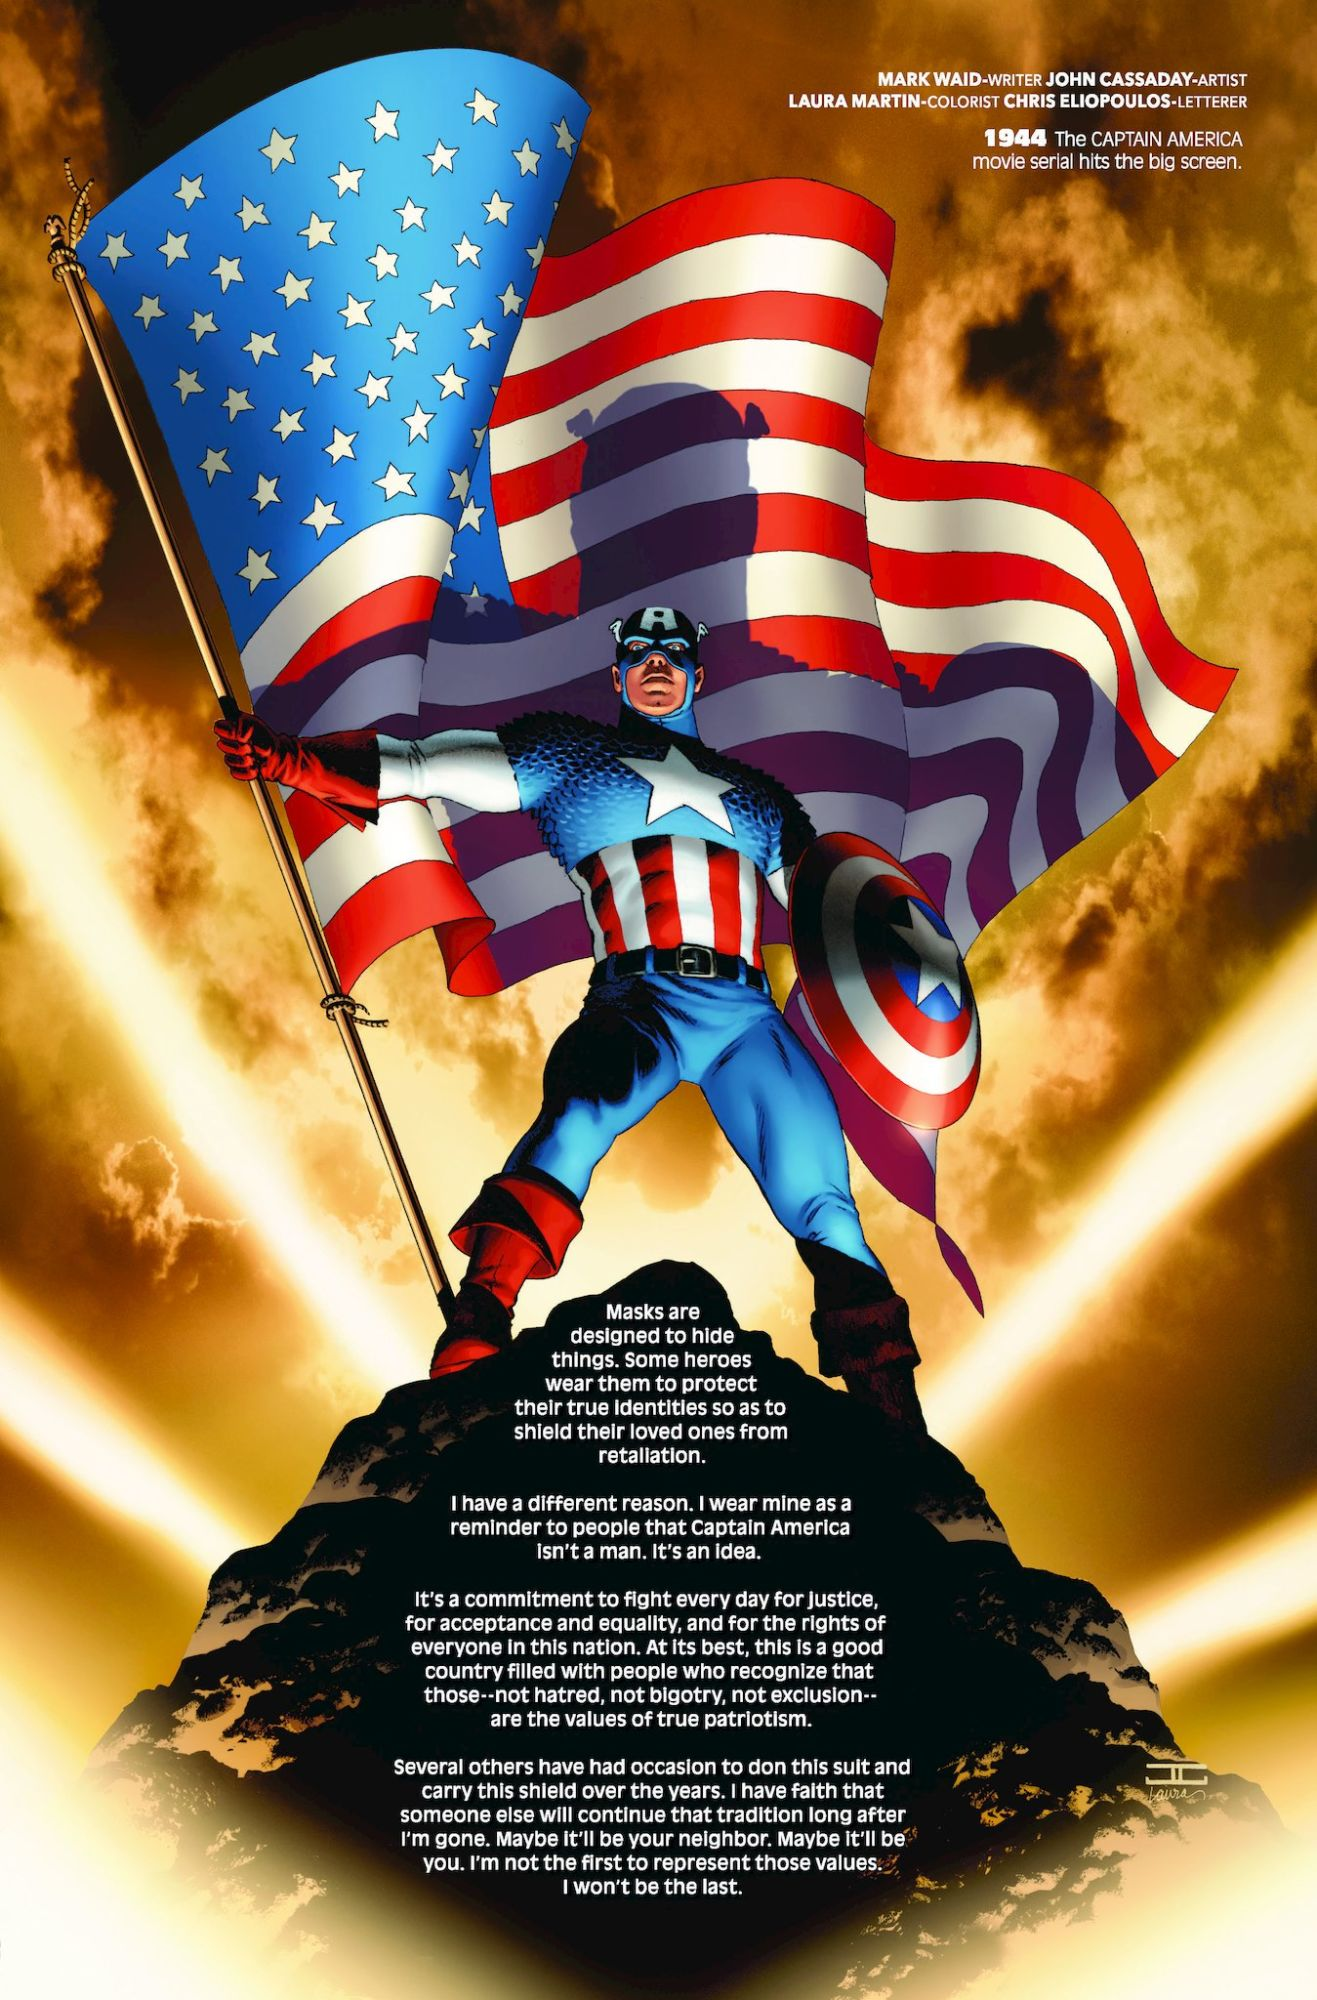 Marvel Stopped the Presses to Remove Mark Waid's Captain America Essay From Marvel Comics #1000